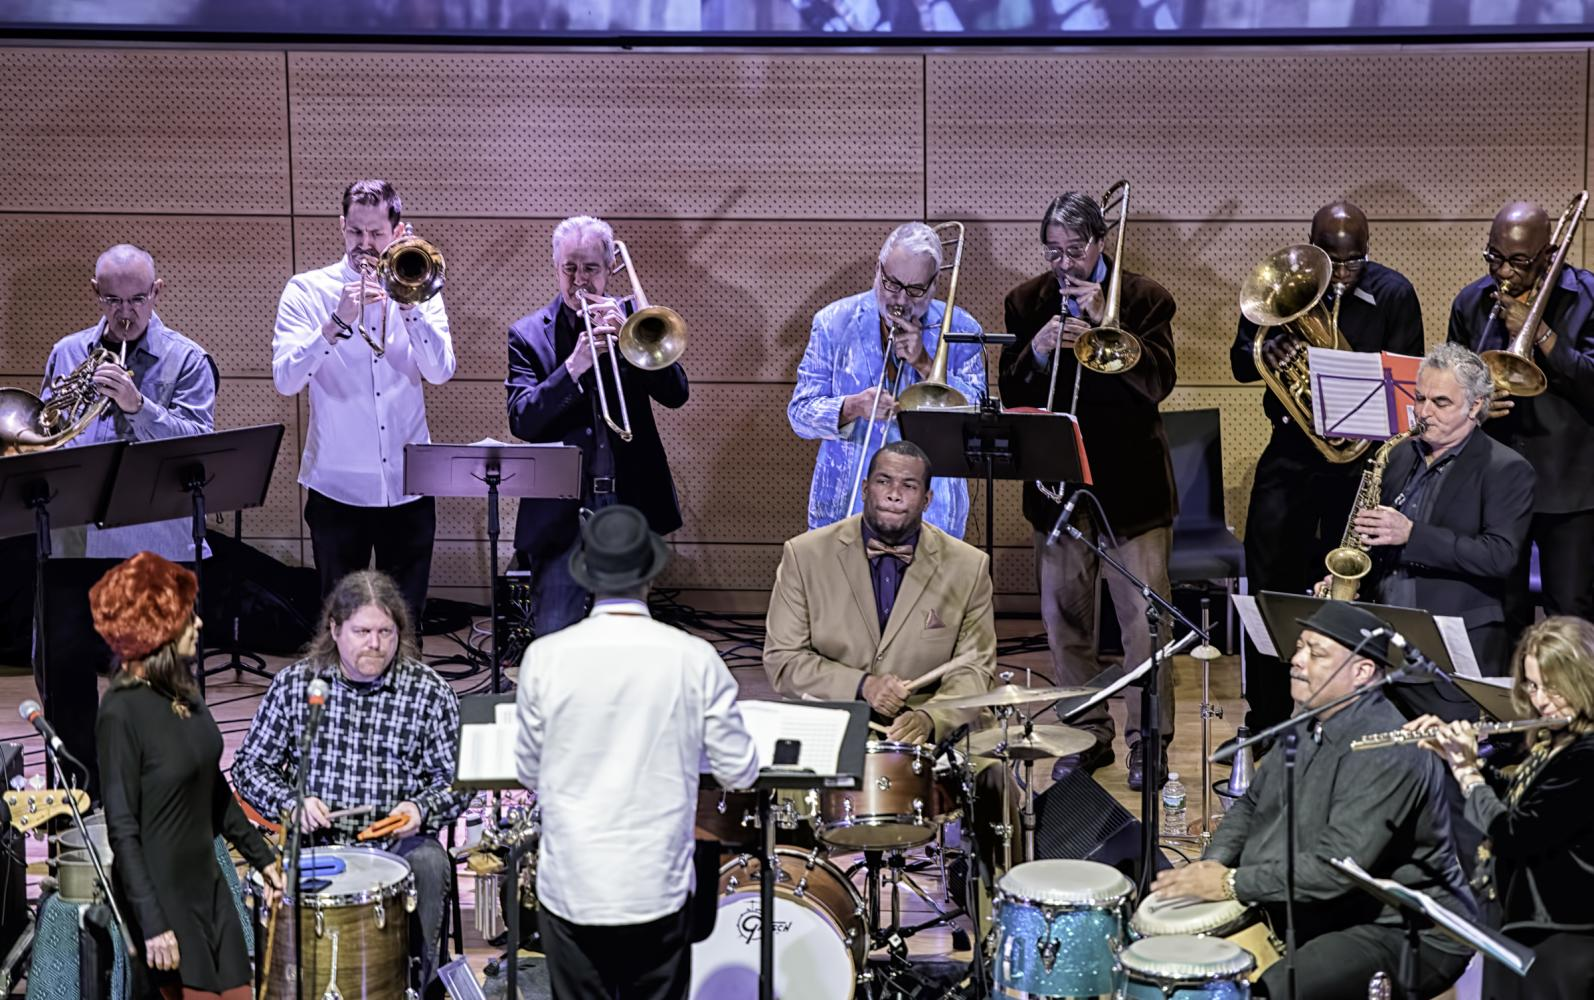 Kali Z. Fasteau, Dick Griffin, Joseph Daley, Steve Swell, Brett Sroka, Avram Fefer, Baba Donn Babatunde, Kahlil Bell, Andrew Drury, Andre Brachfeld with Craig Harris and Breathe at the NYC Winter Jazzfest 2017